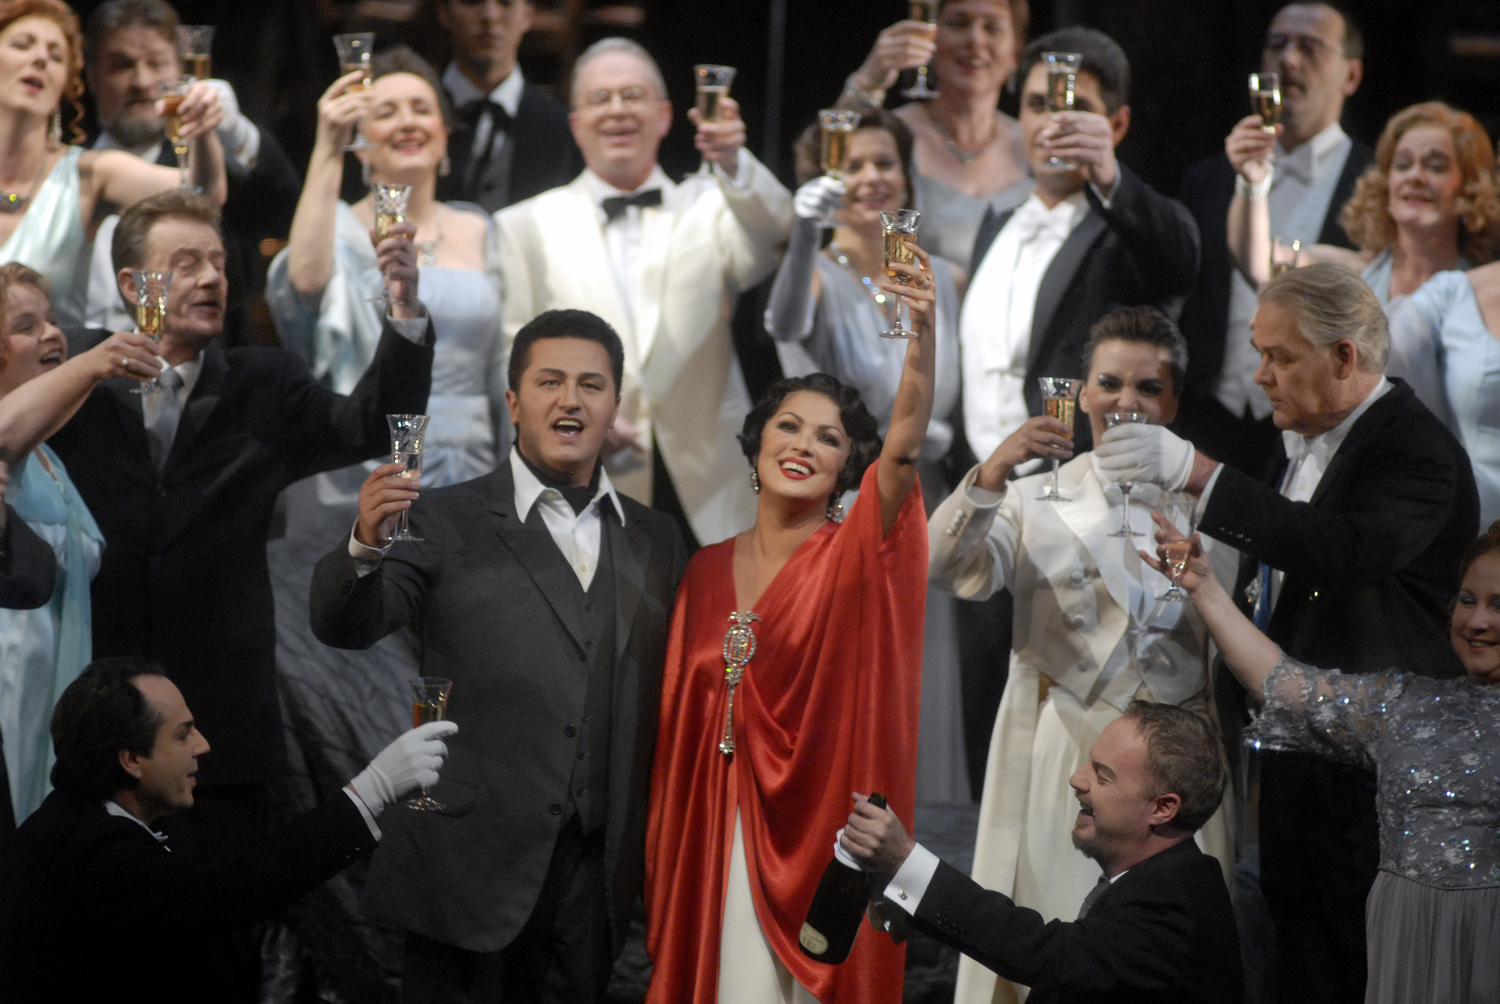 BWW Review: LA TRAVIATA at Deutsche Oper Berlin - A woefully underrehearsed performance with a runaway orchestra